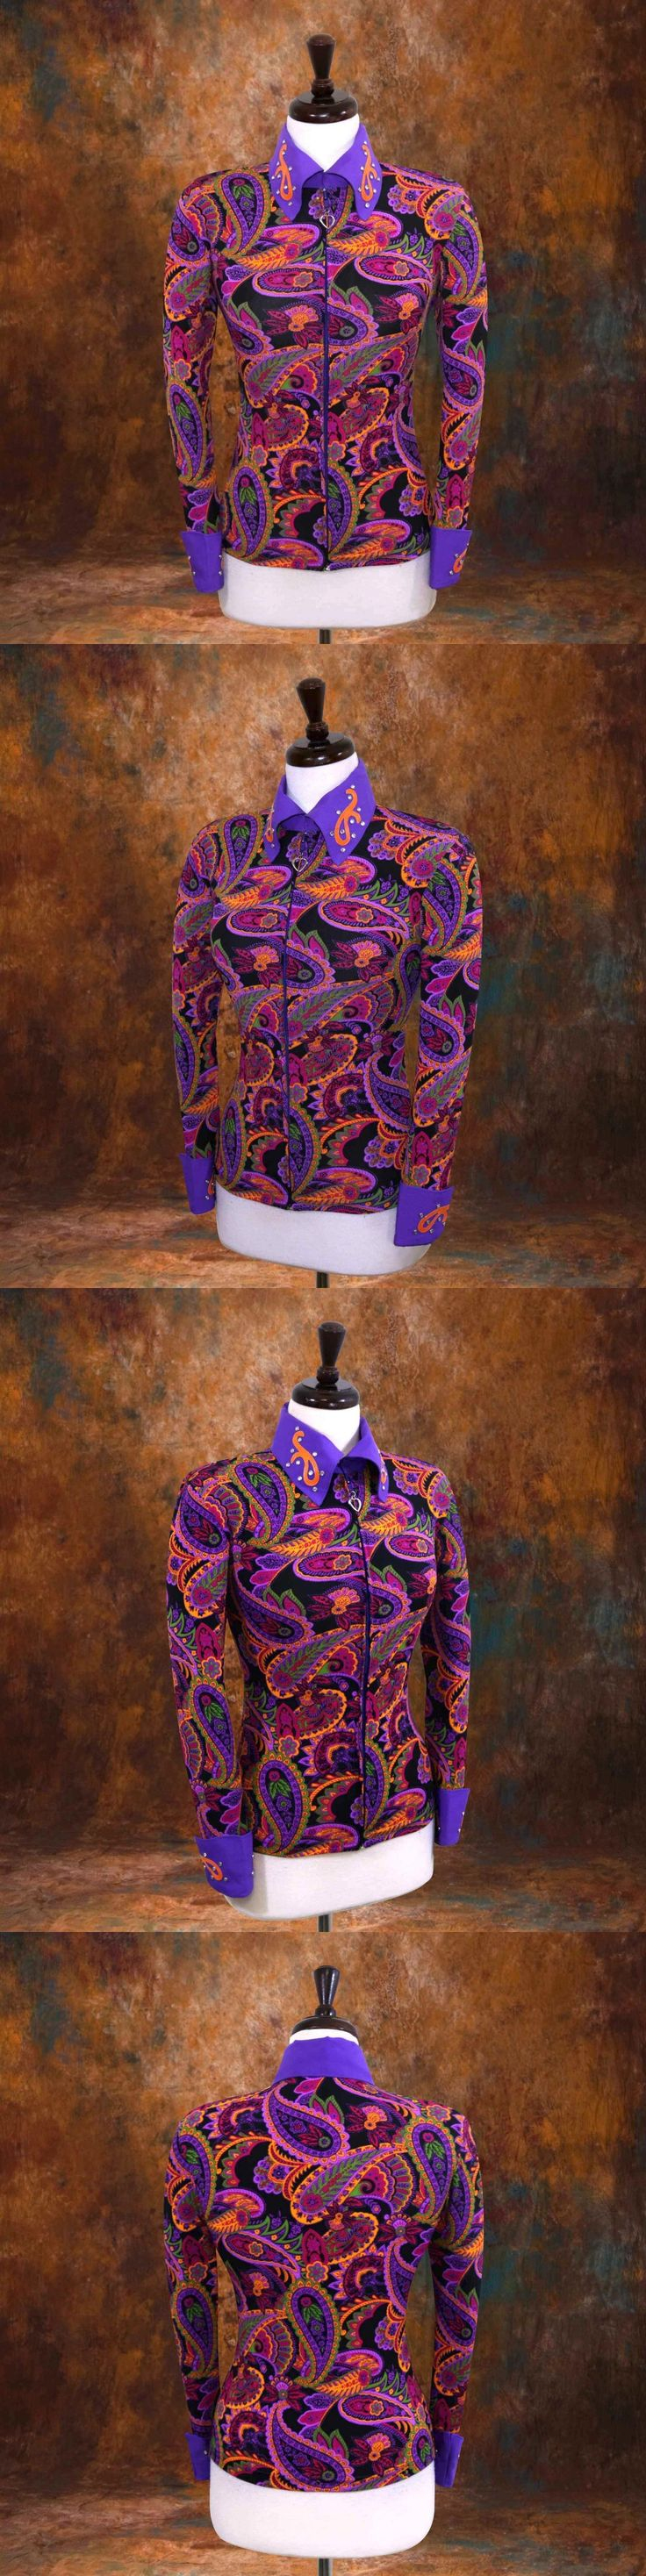 Other Rider Clothing 3167: Large Showmanship Pleasure Horsemanship Show Jacket Shirt Rodeo Queen Rail -> BUY IT NOW ONLY: $74.98 on eBay!